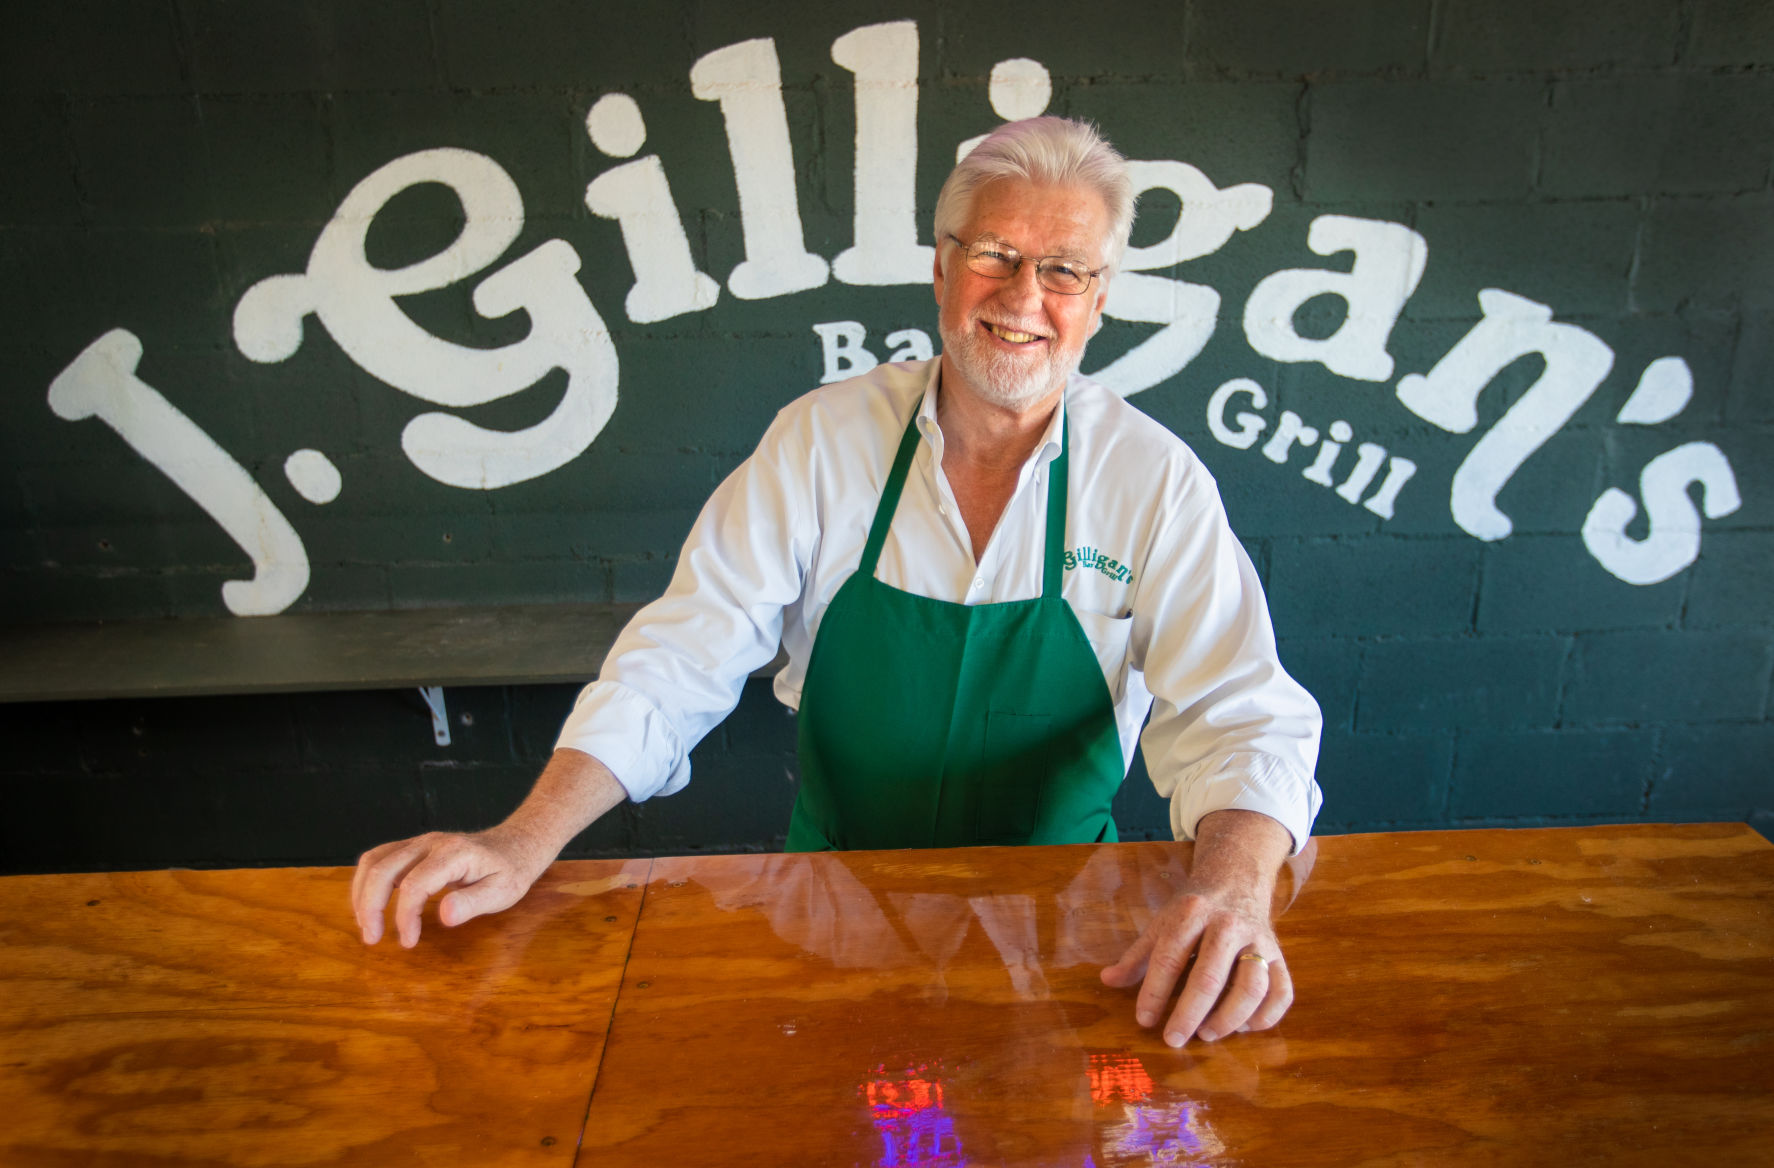 A look back at the origin of J. Gilligan's Bar and Grill